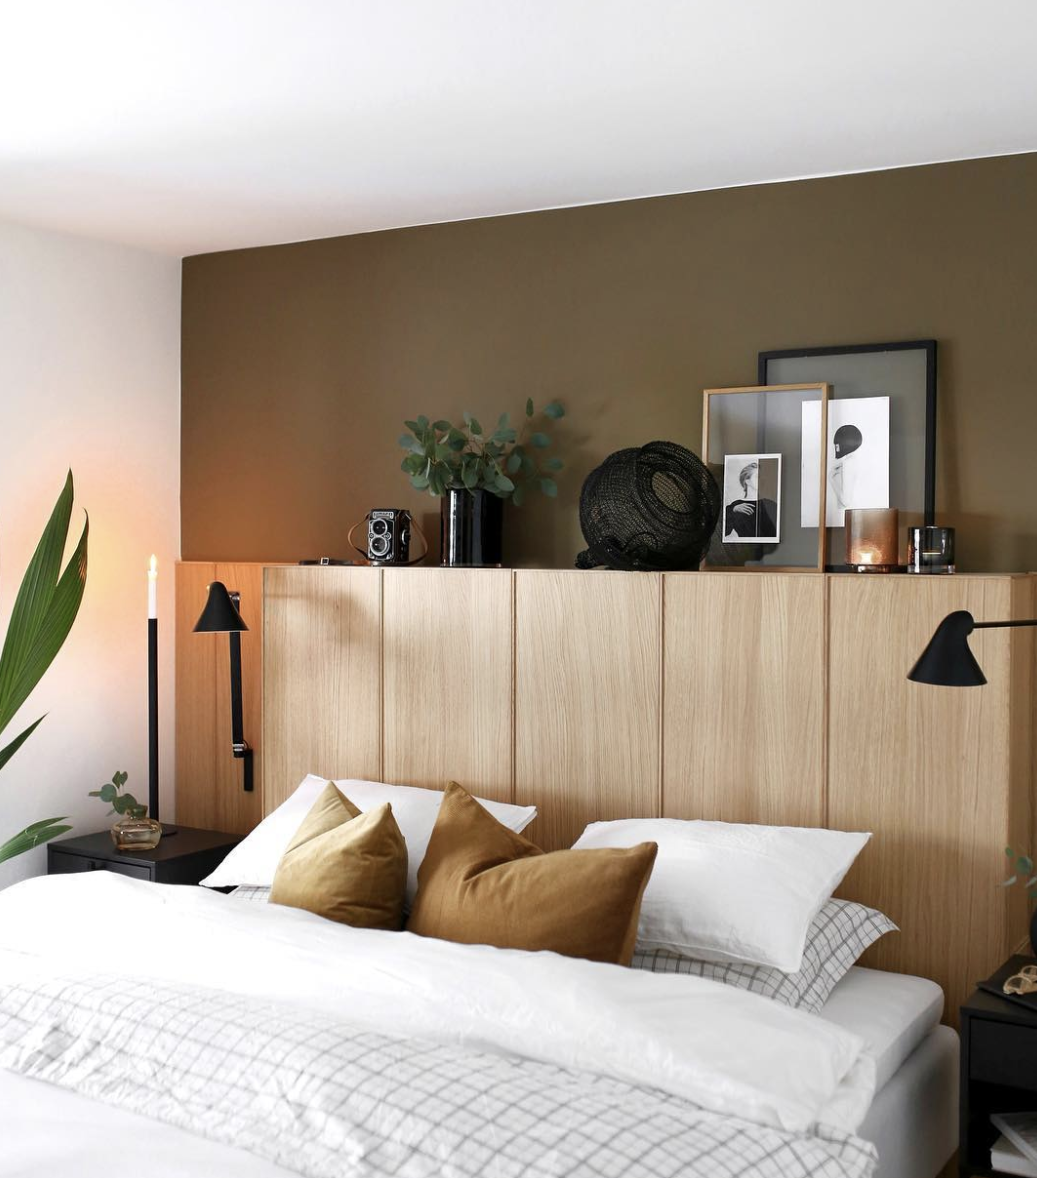 11 Ikea Bedroom Ideas Perfect For Small Spaces Hunker Bedroom Interior Small Space Bedroom Home Decor Bedroom